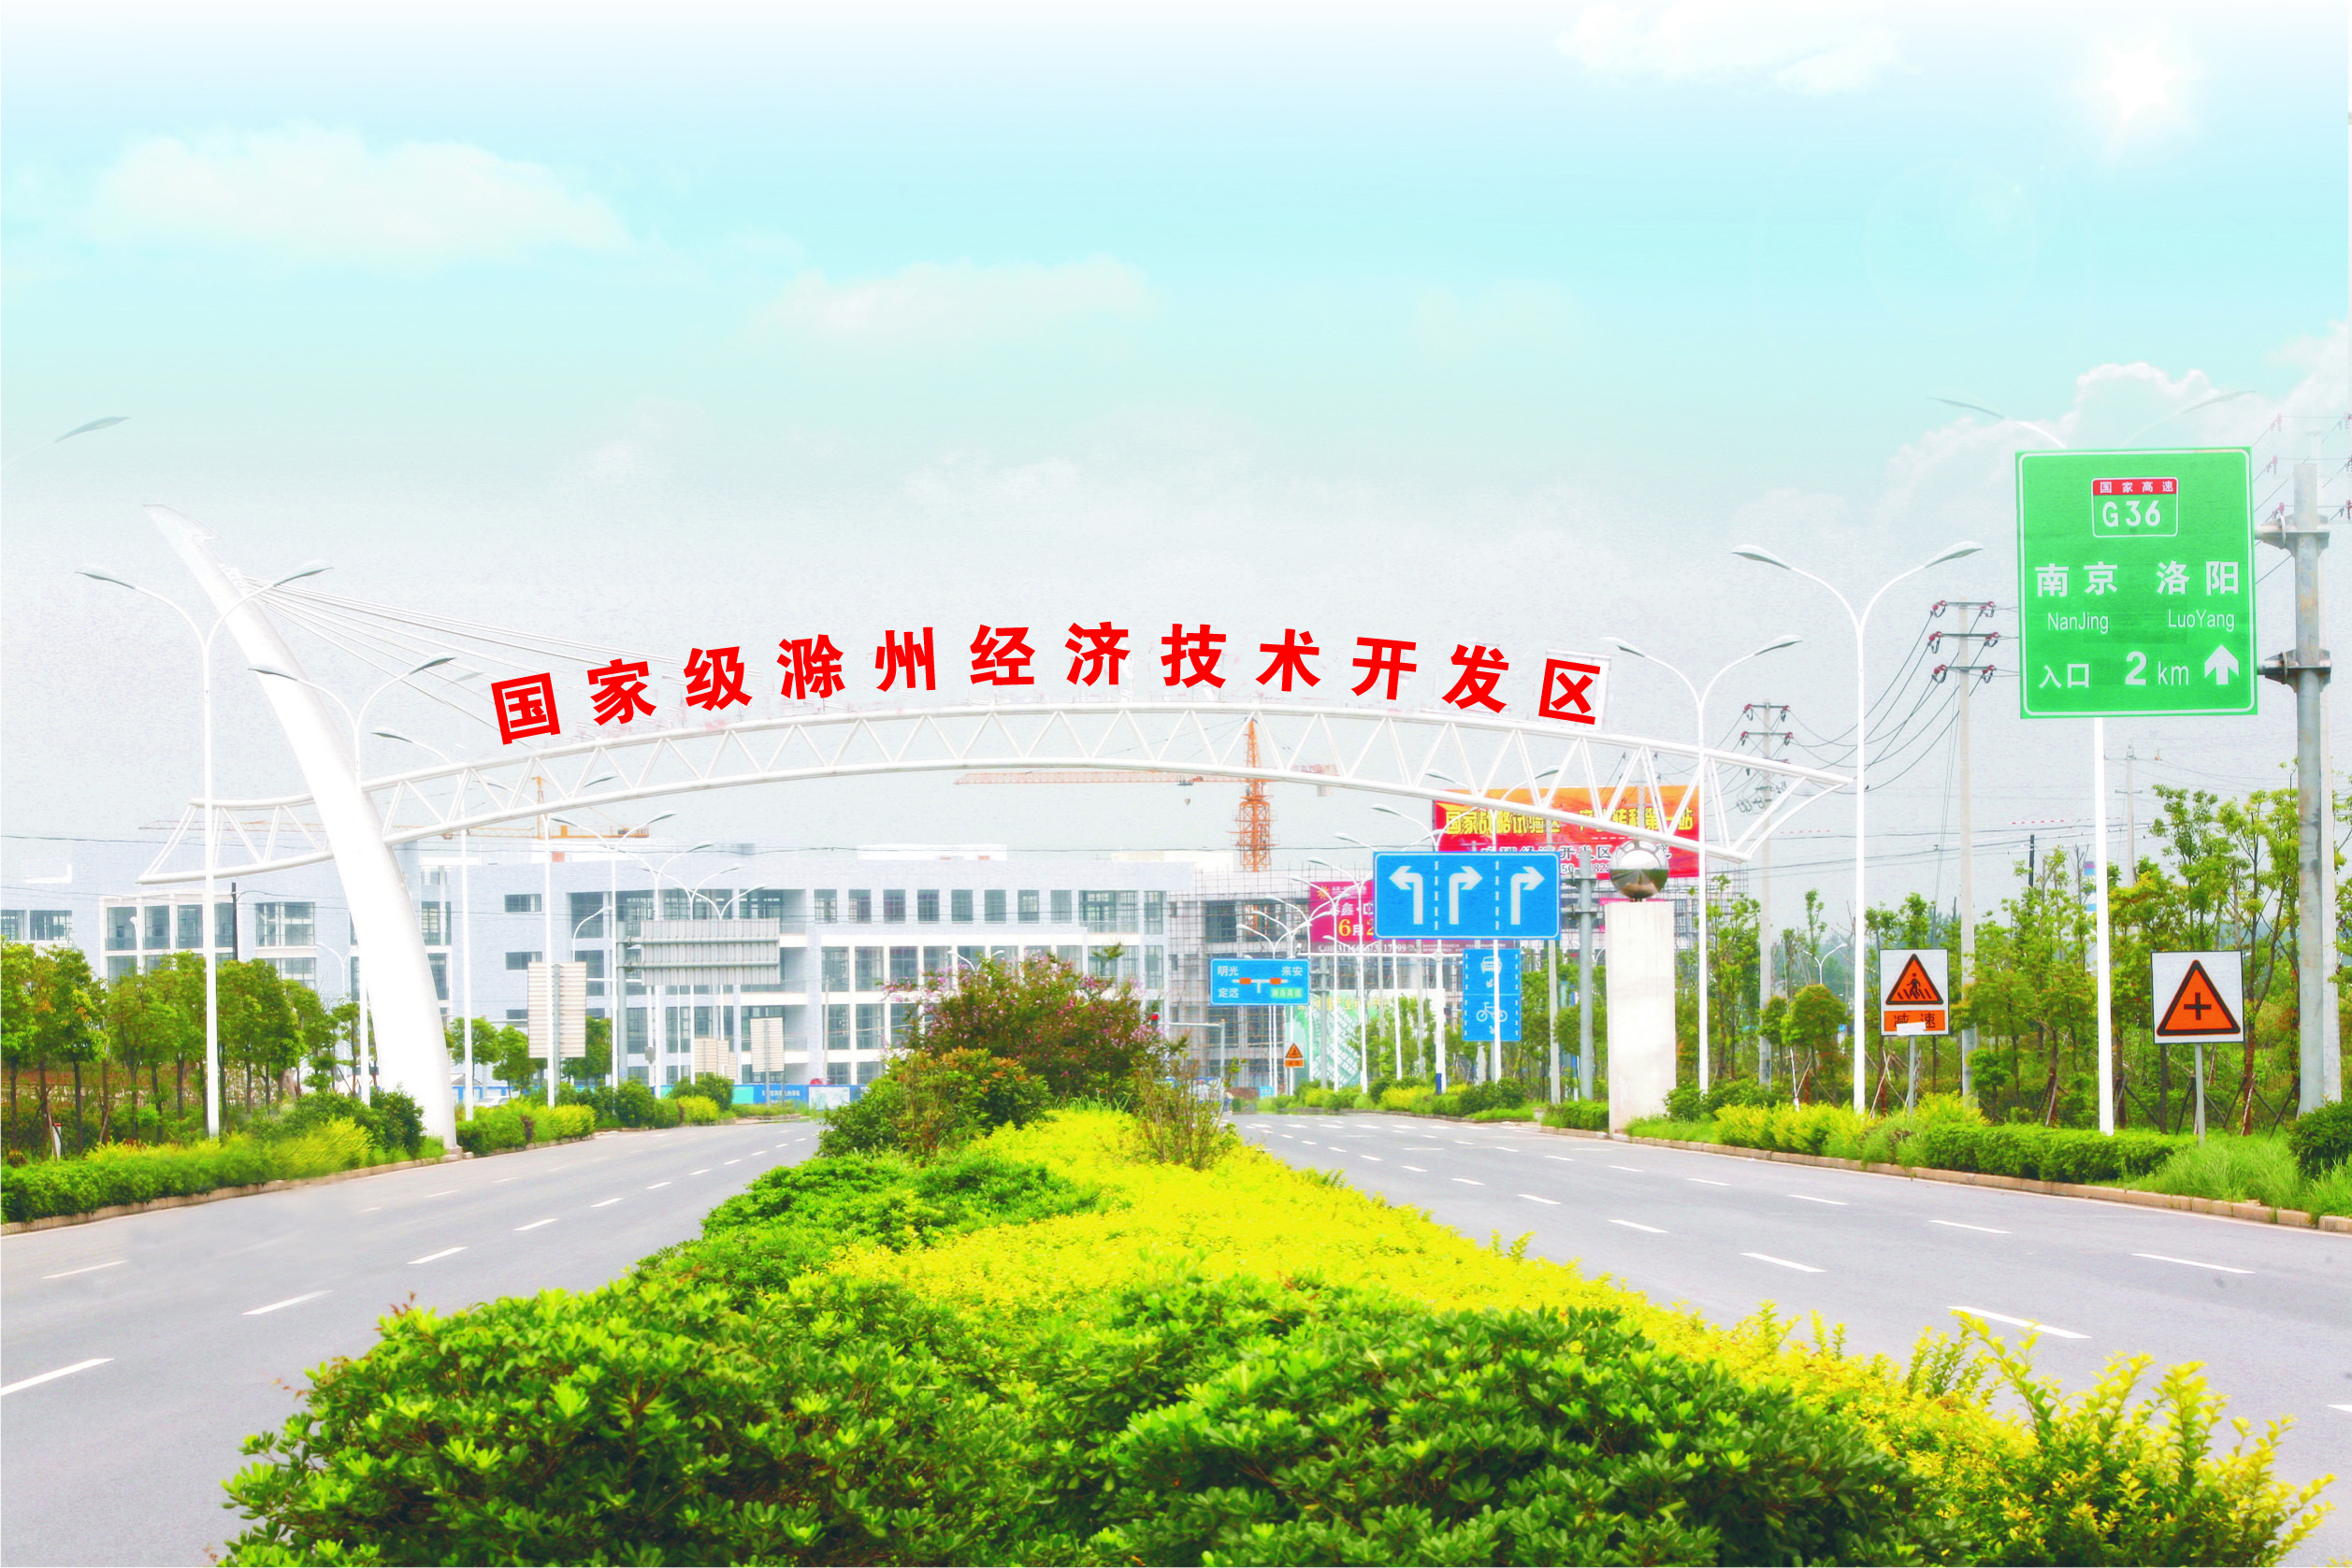 Image of Chuzhou Economic and Technological Development Zone